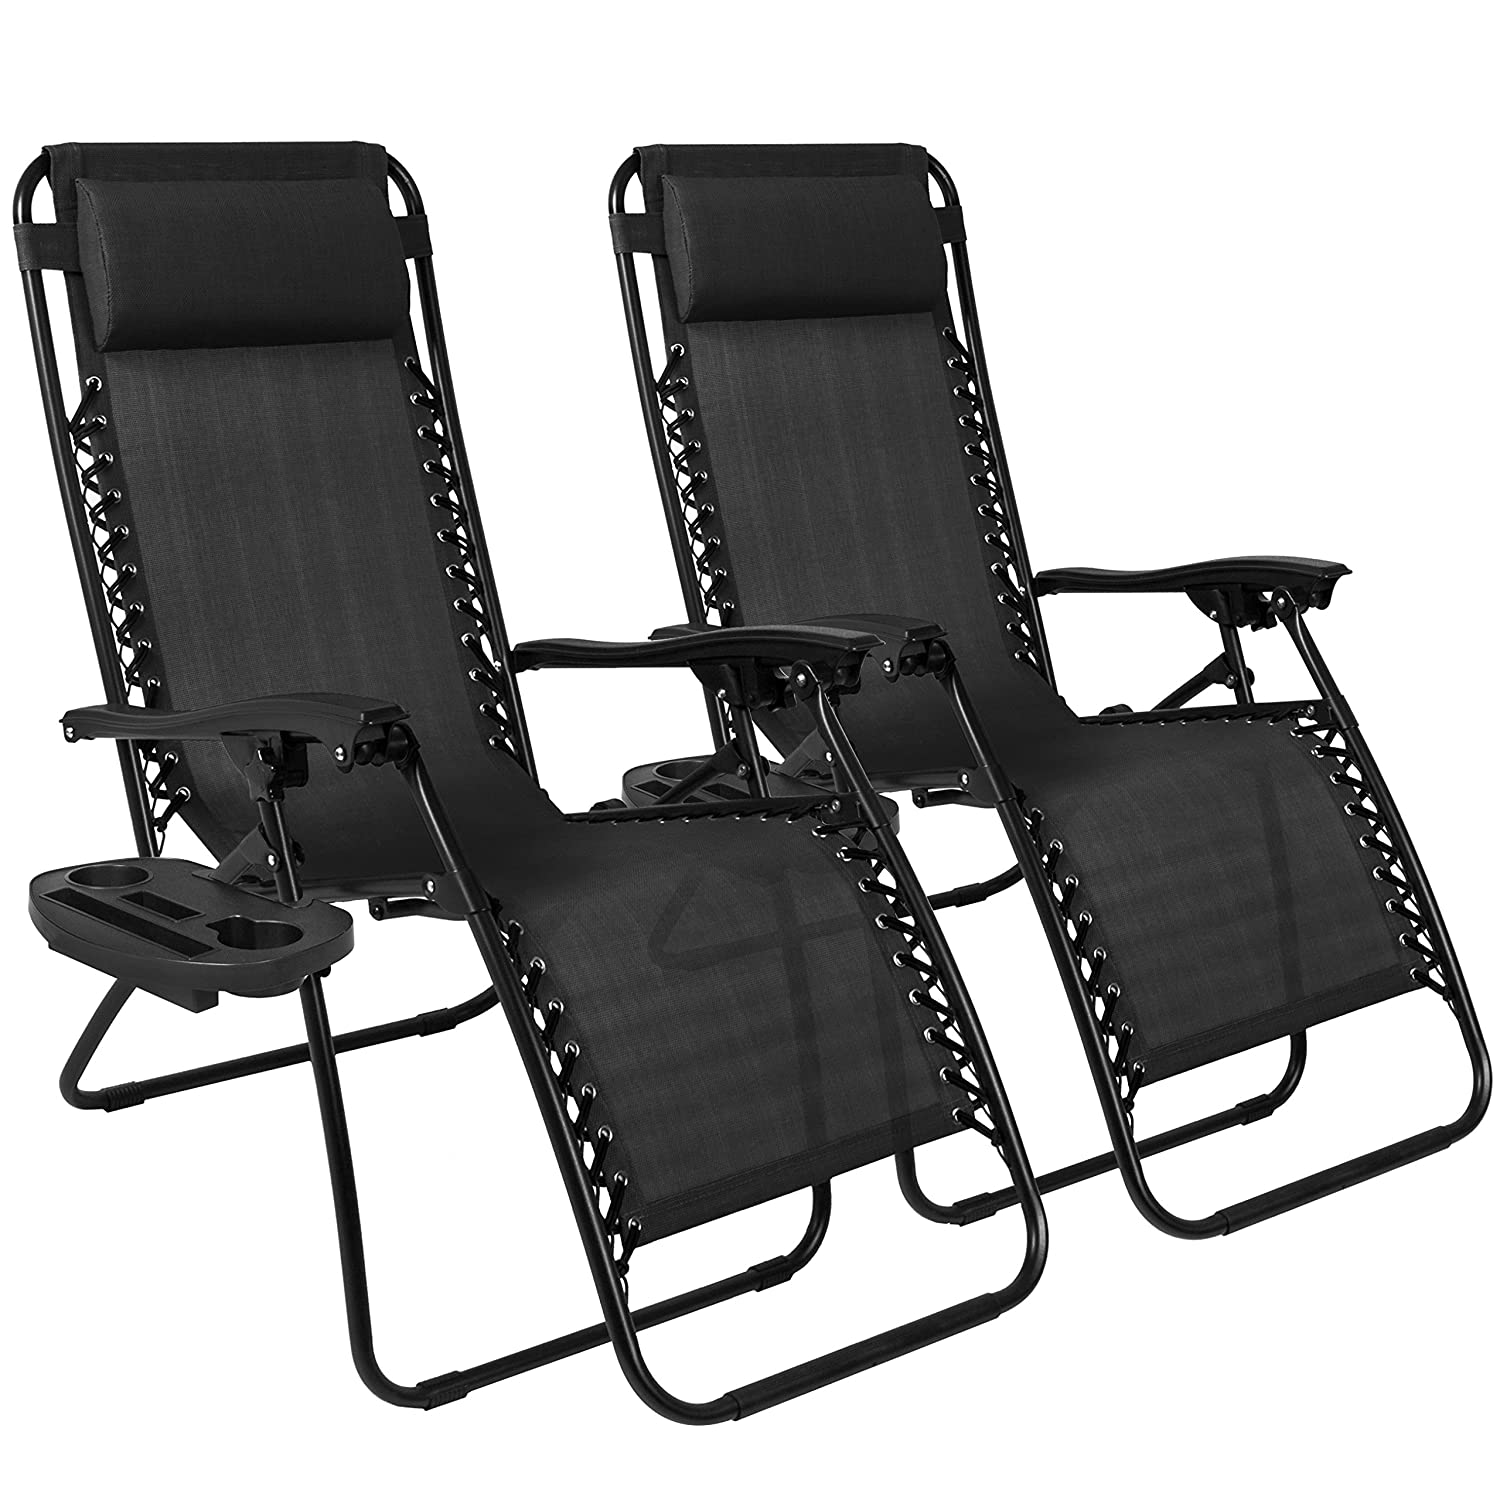 Amazon.com Best Choice Products Set of 2 Adjustable Zero Gravity Lounge Chair Recliners for Patio Pool w/Cup Holders - Black Kitchen u0026 Dining  sc 1 st  Amazon.com & Amazon.com: Best Choice Products Set of 2 Adjustable Zero Gravity ...